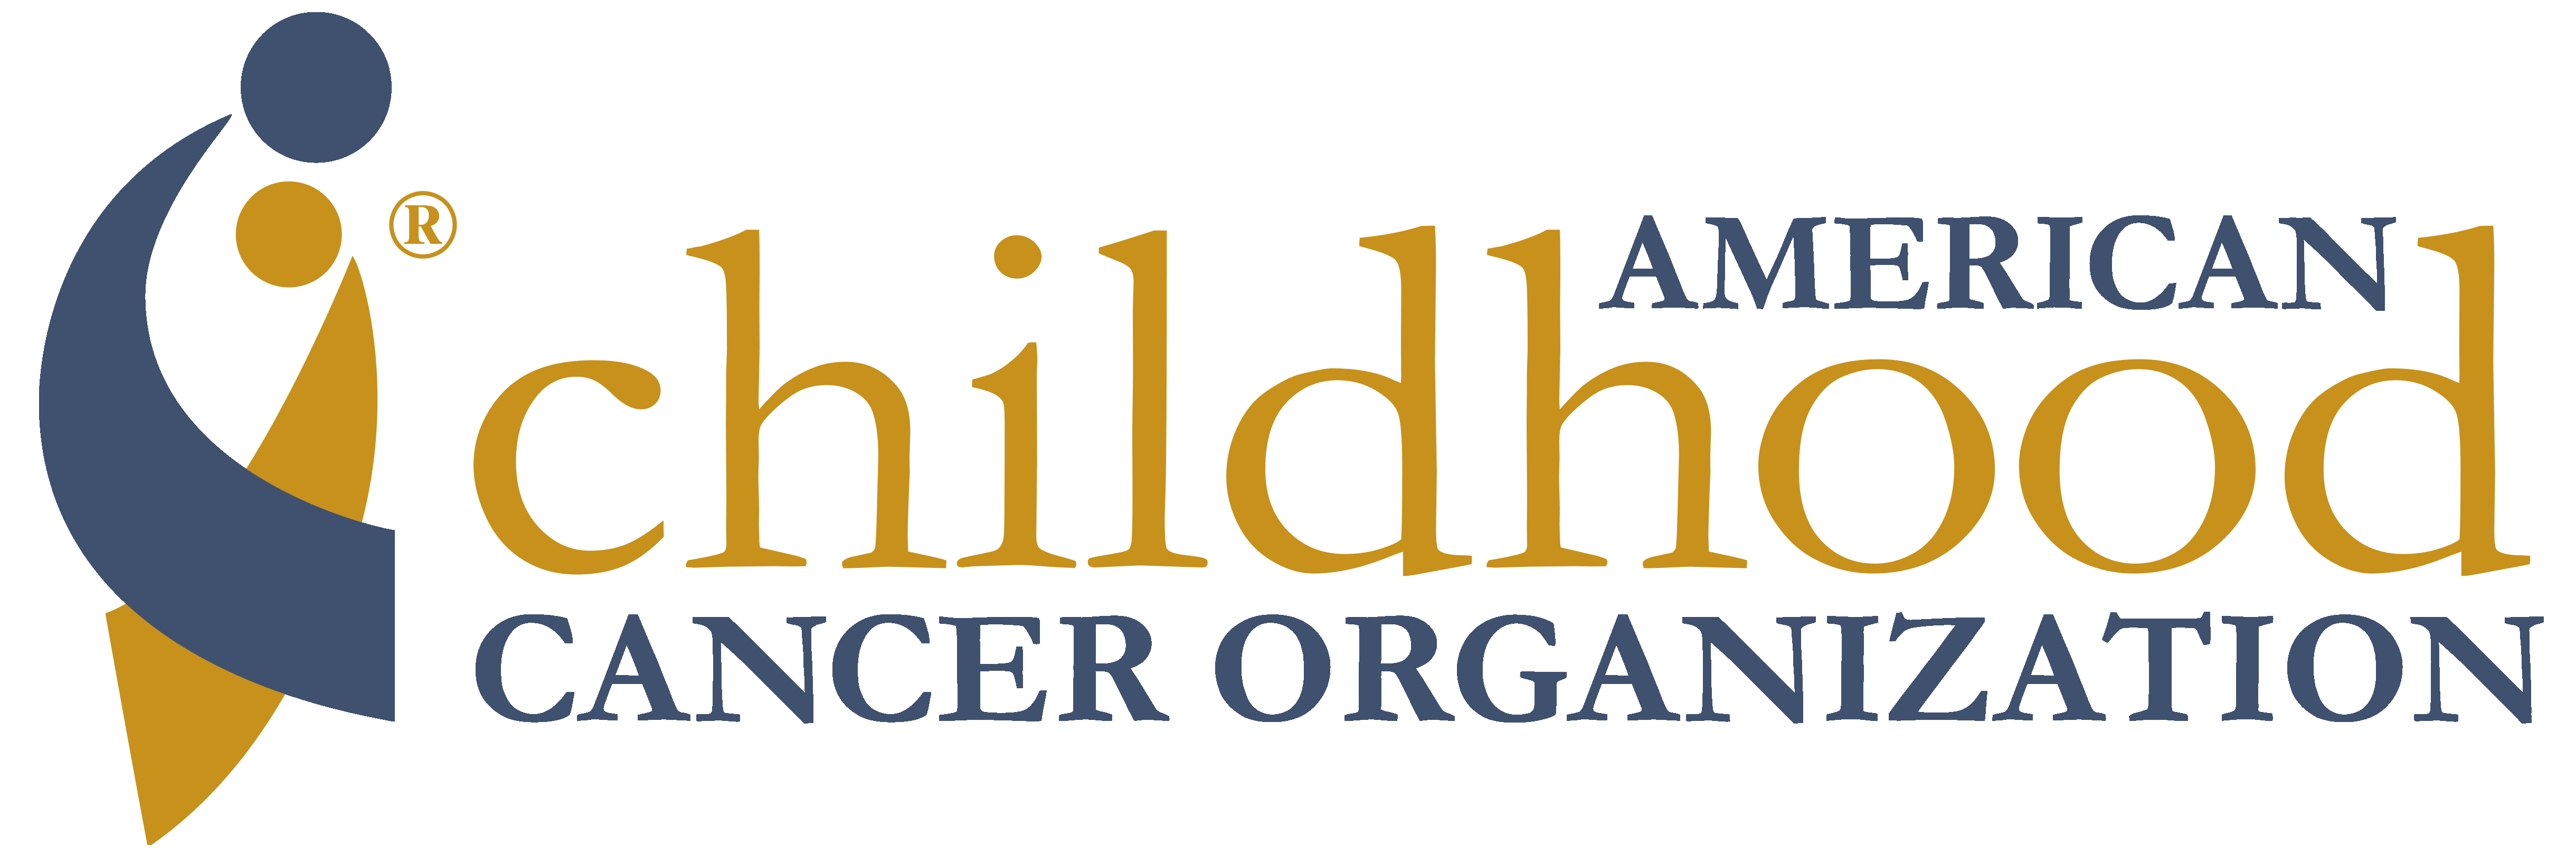 American Childhood Cancer Organization